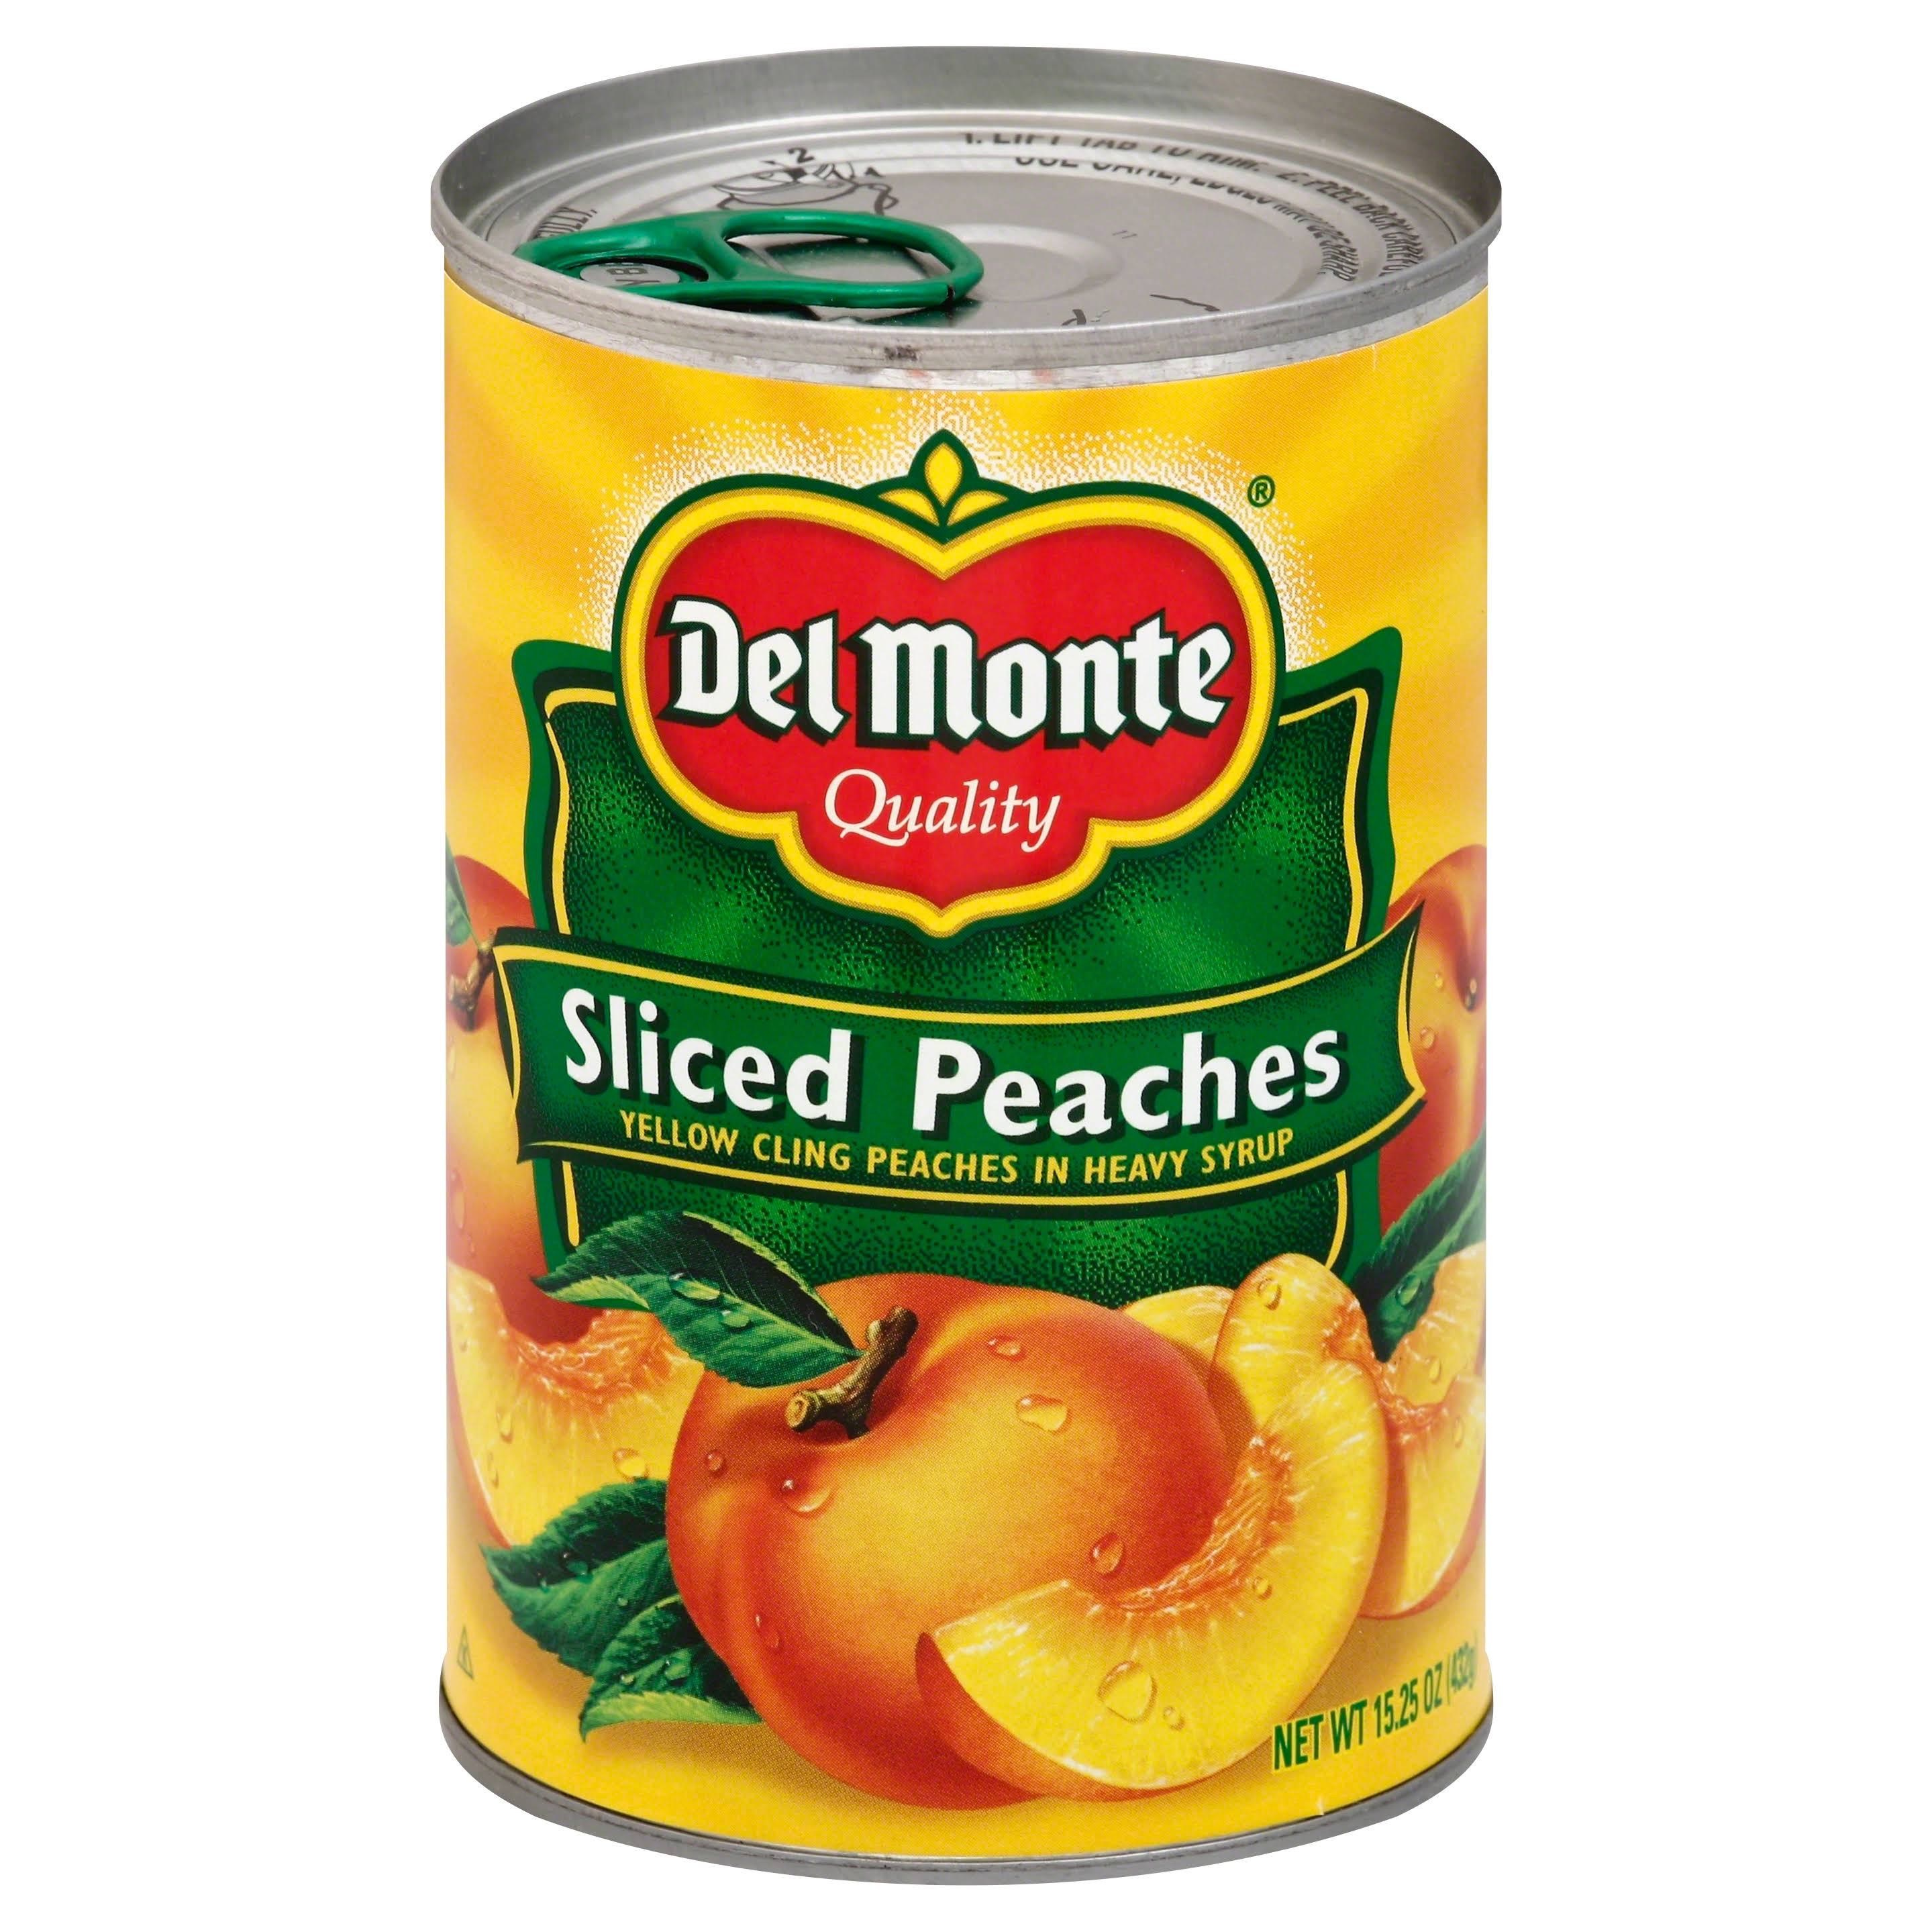 Del Monte Sliced Peaches - 15.25 oz